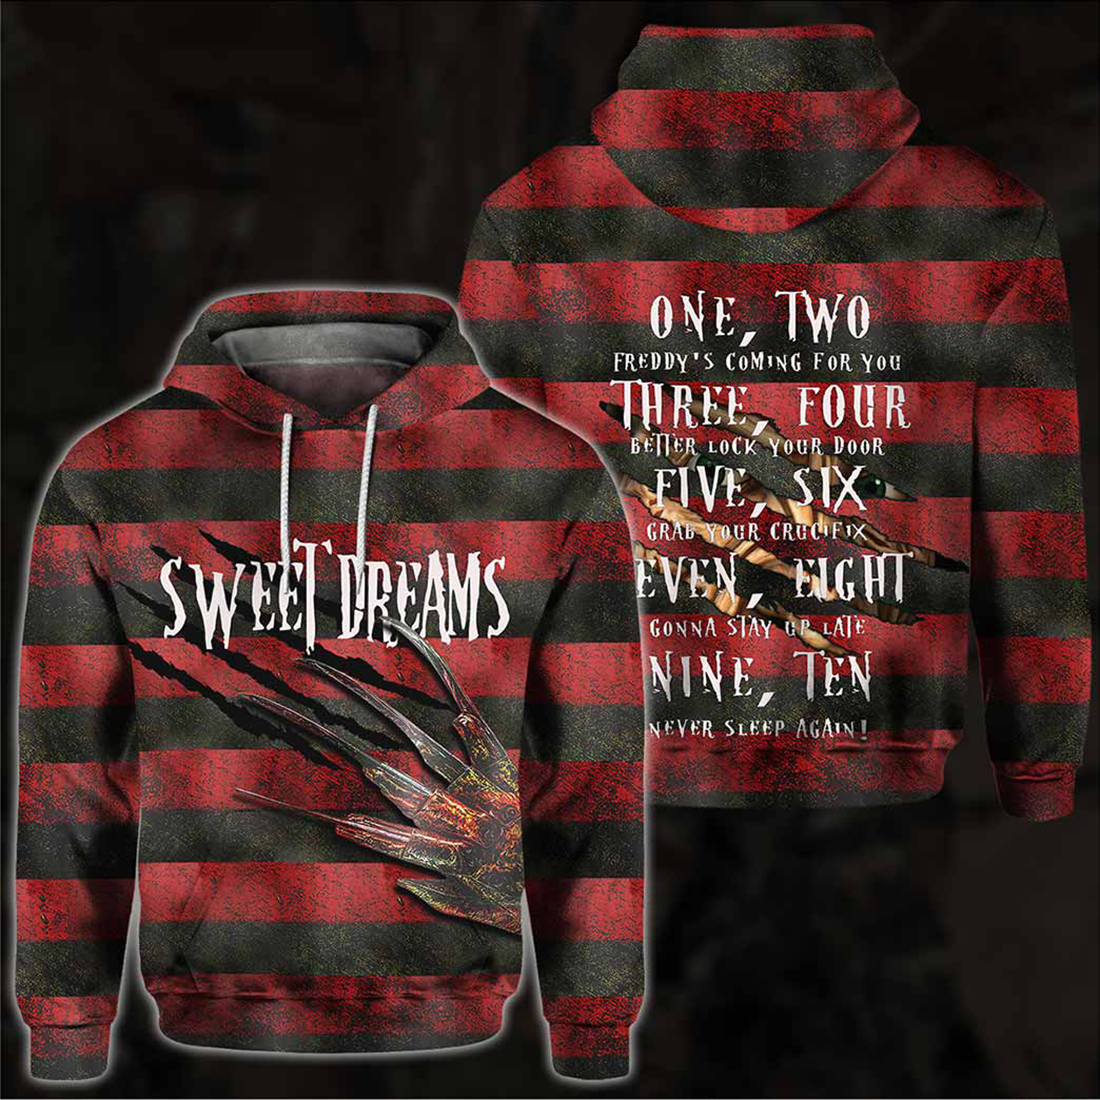 Sweet Dreams One Two Freddy's Coming For You All Over Print Hoodie and T-shirt